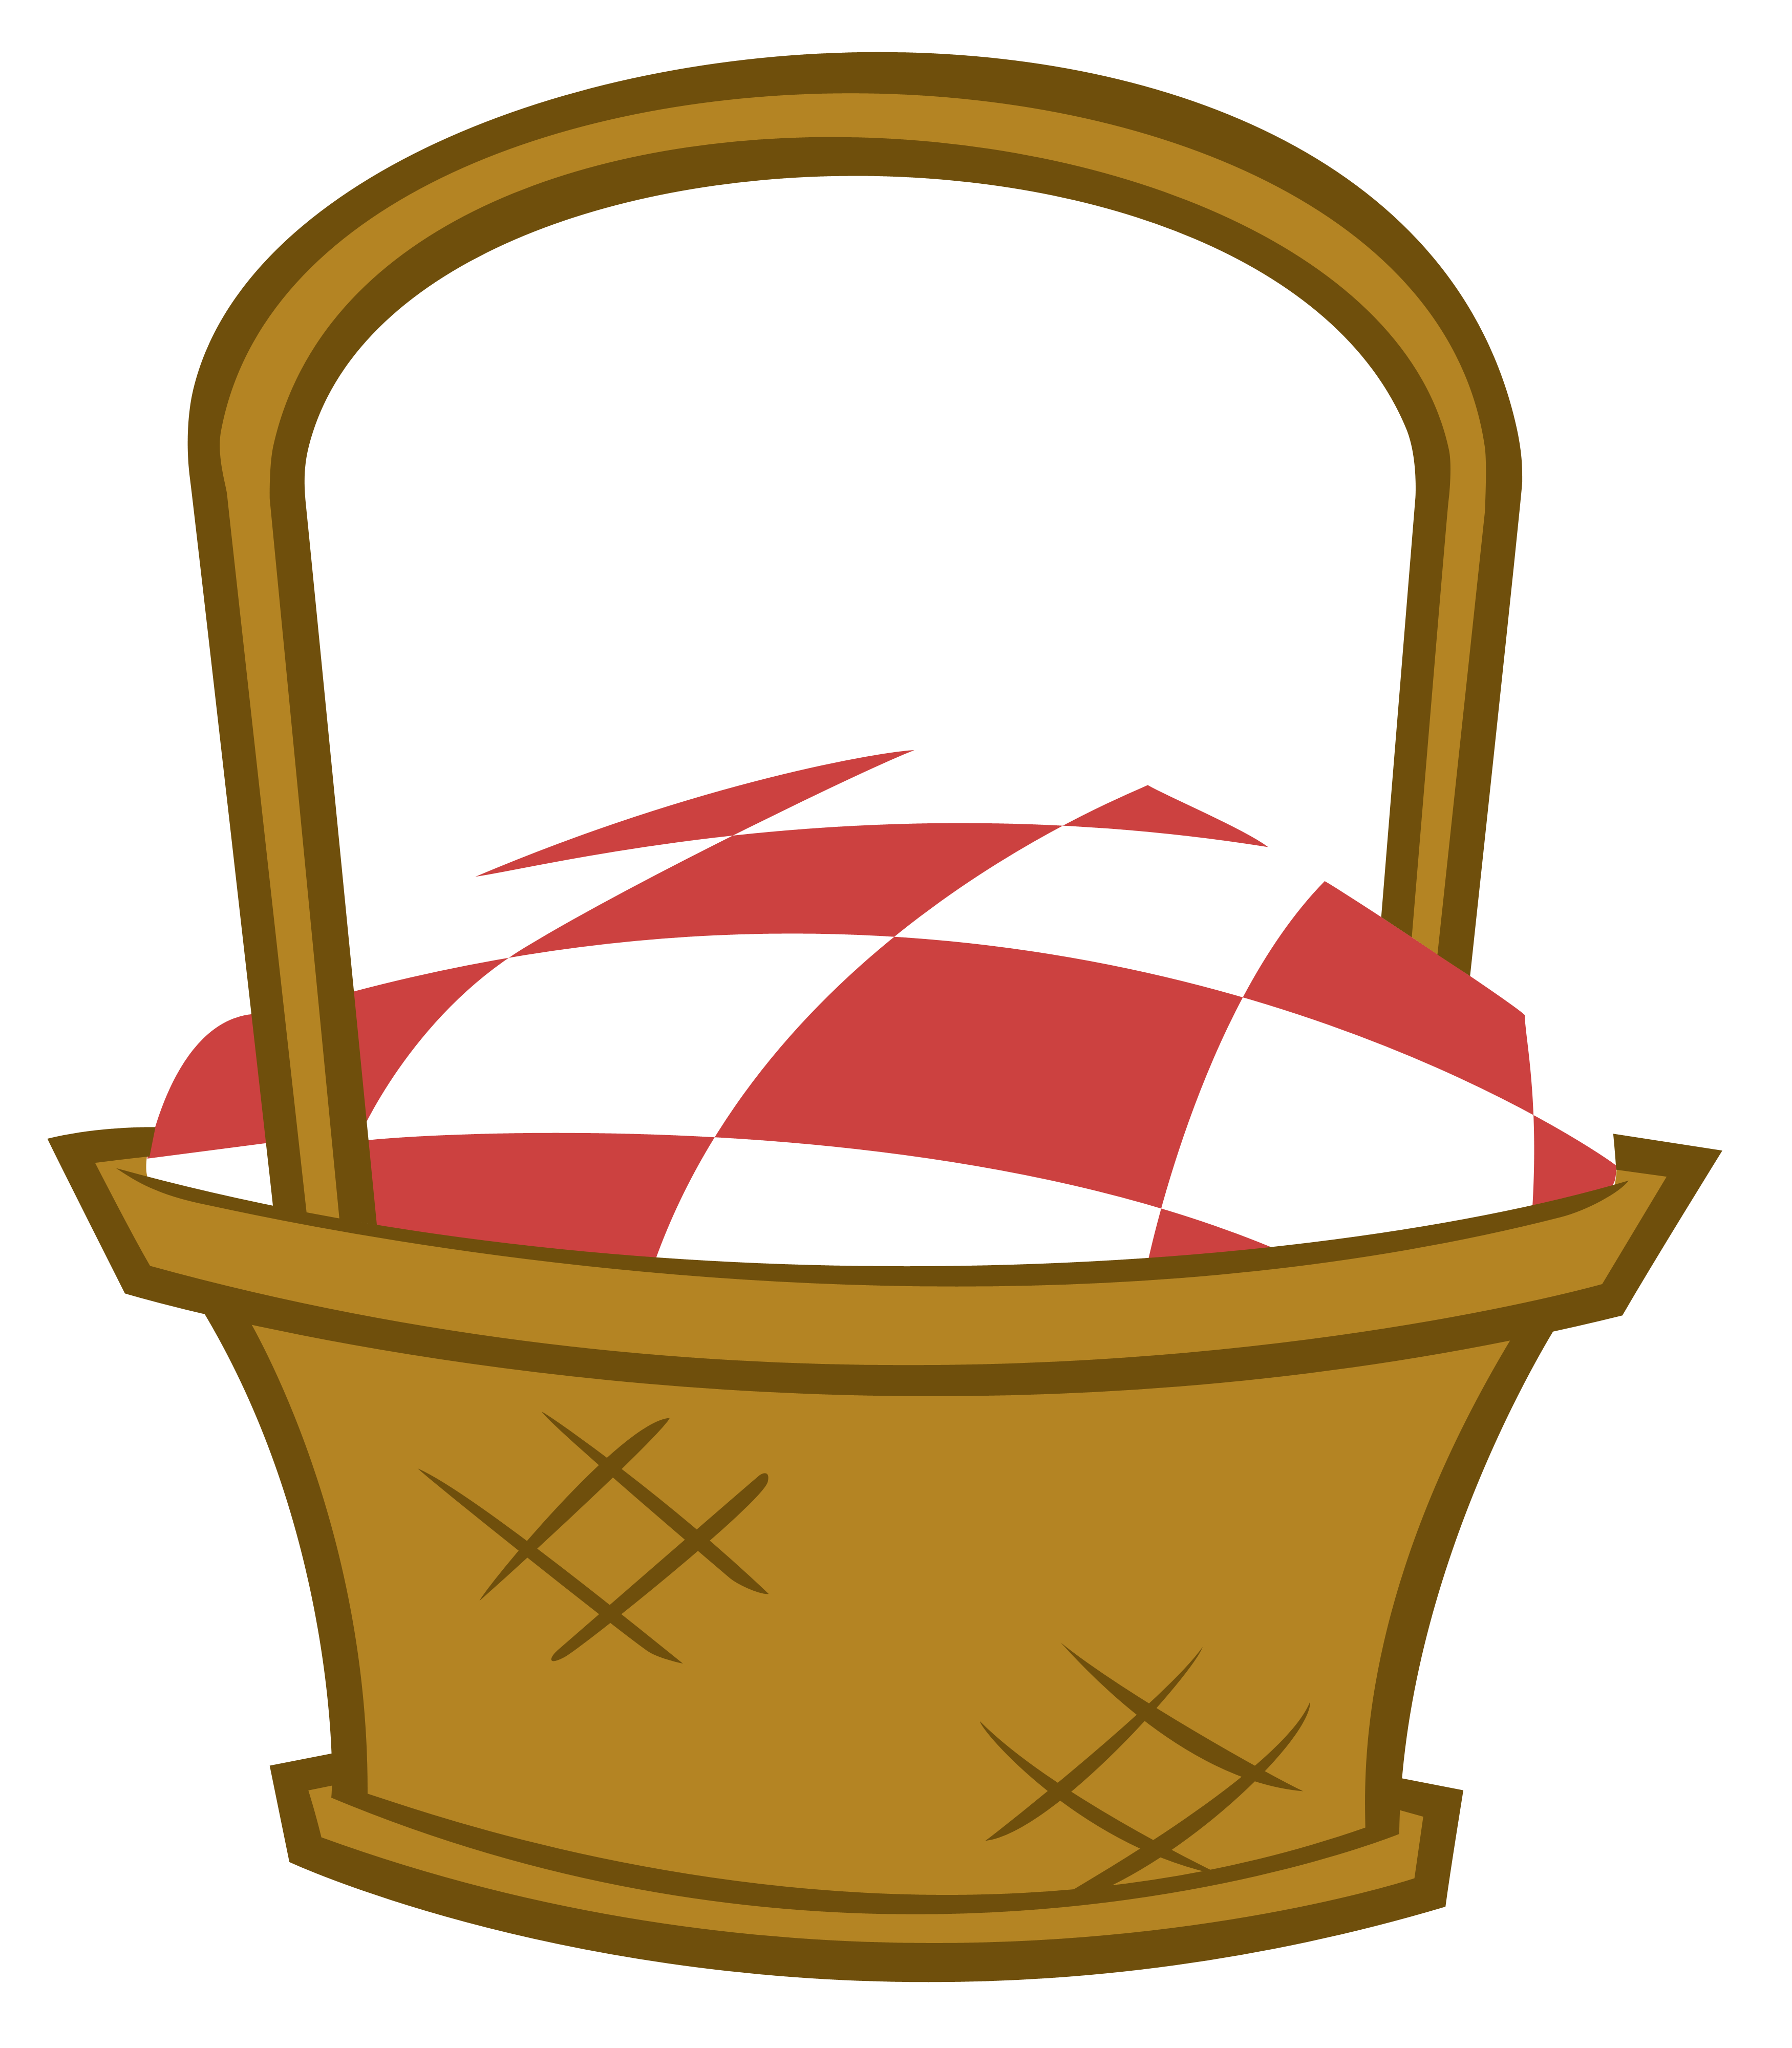 Weaving drawing basket design. Family picnic blanket clipart